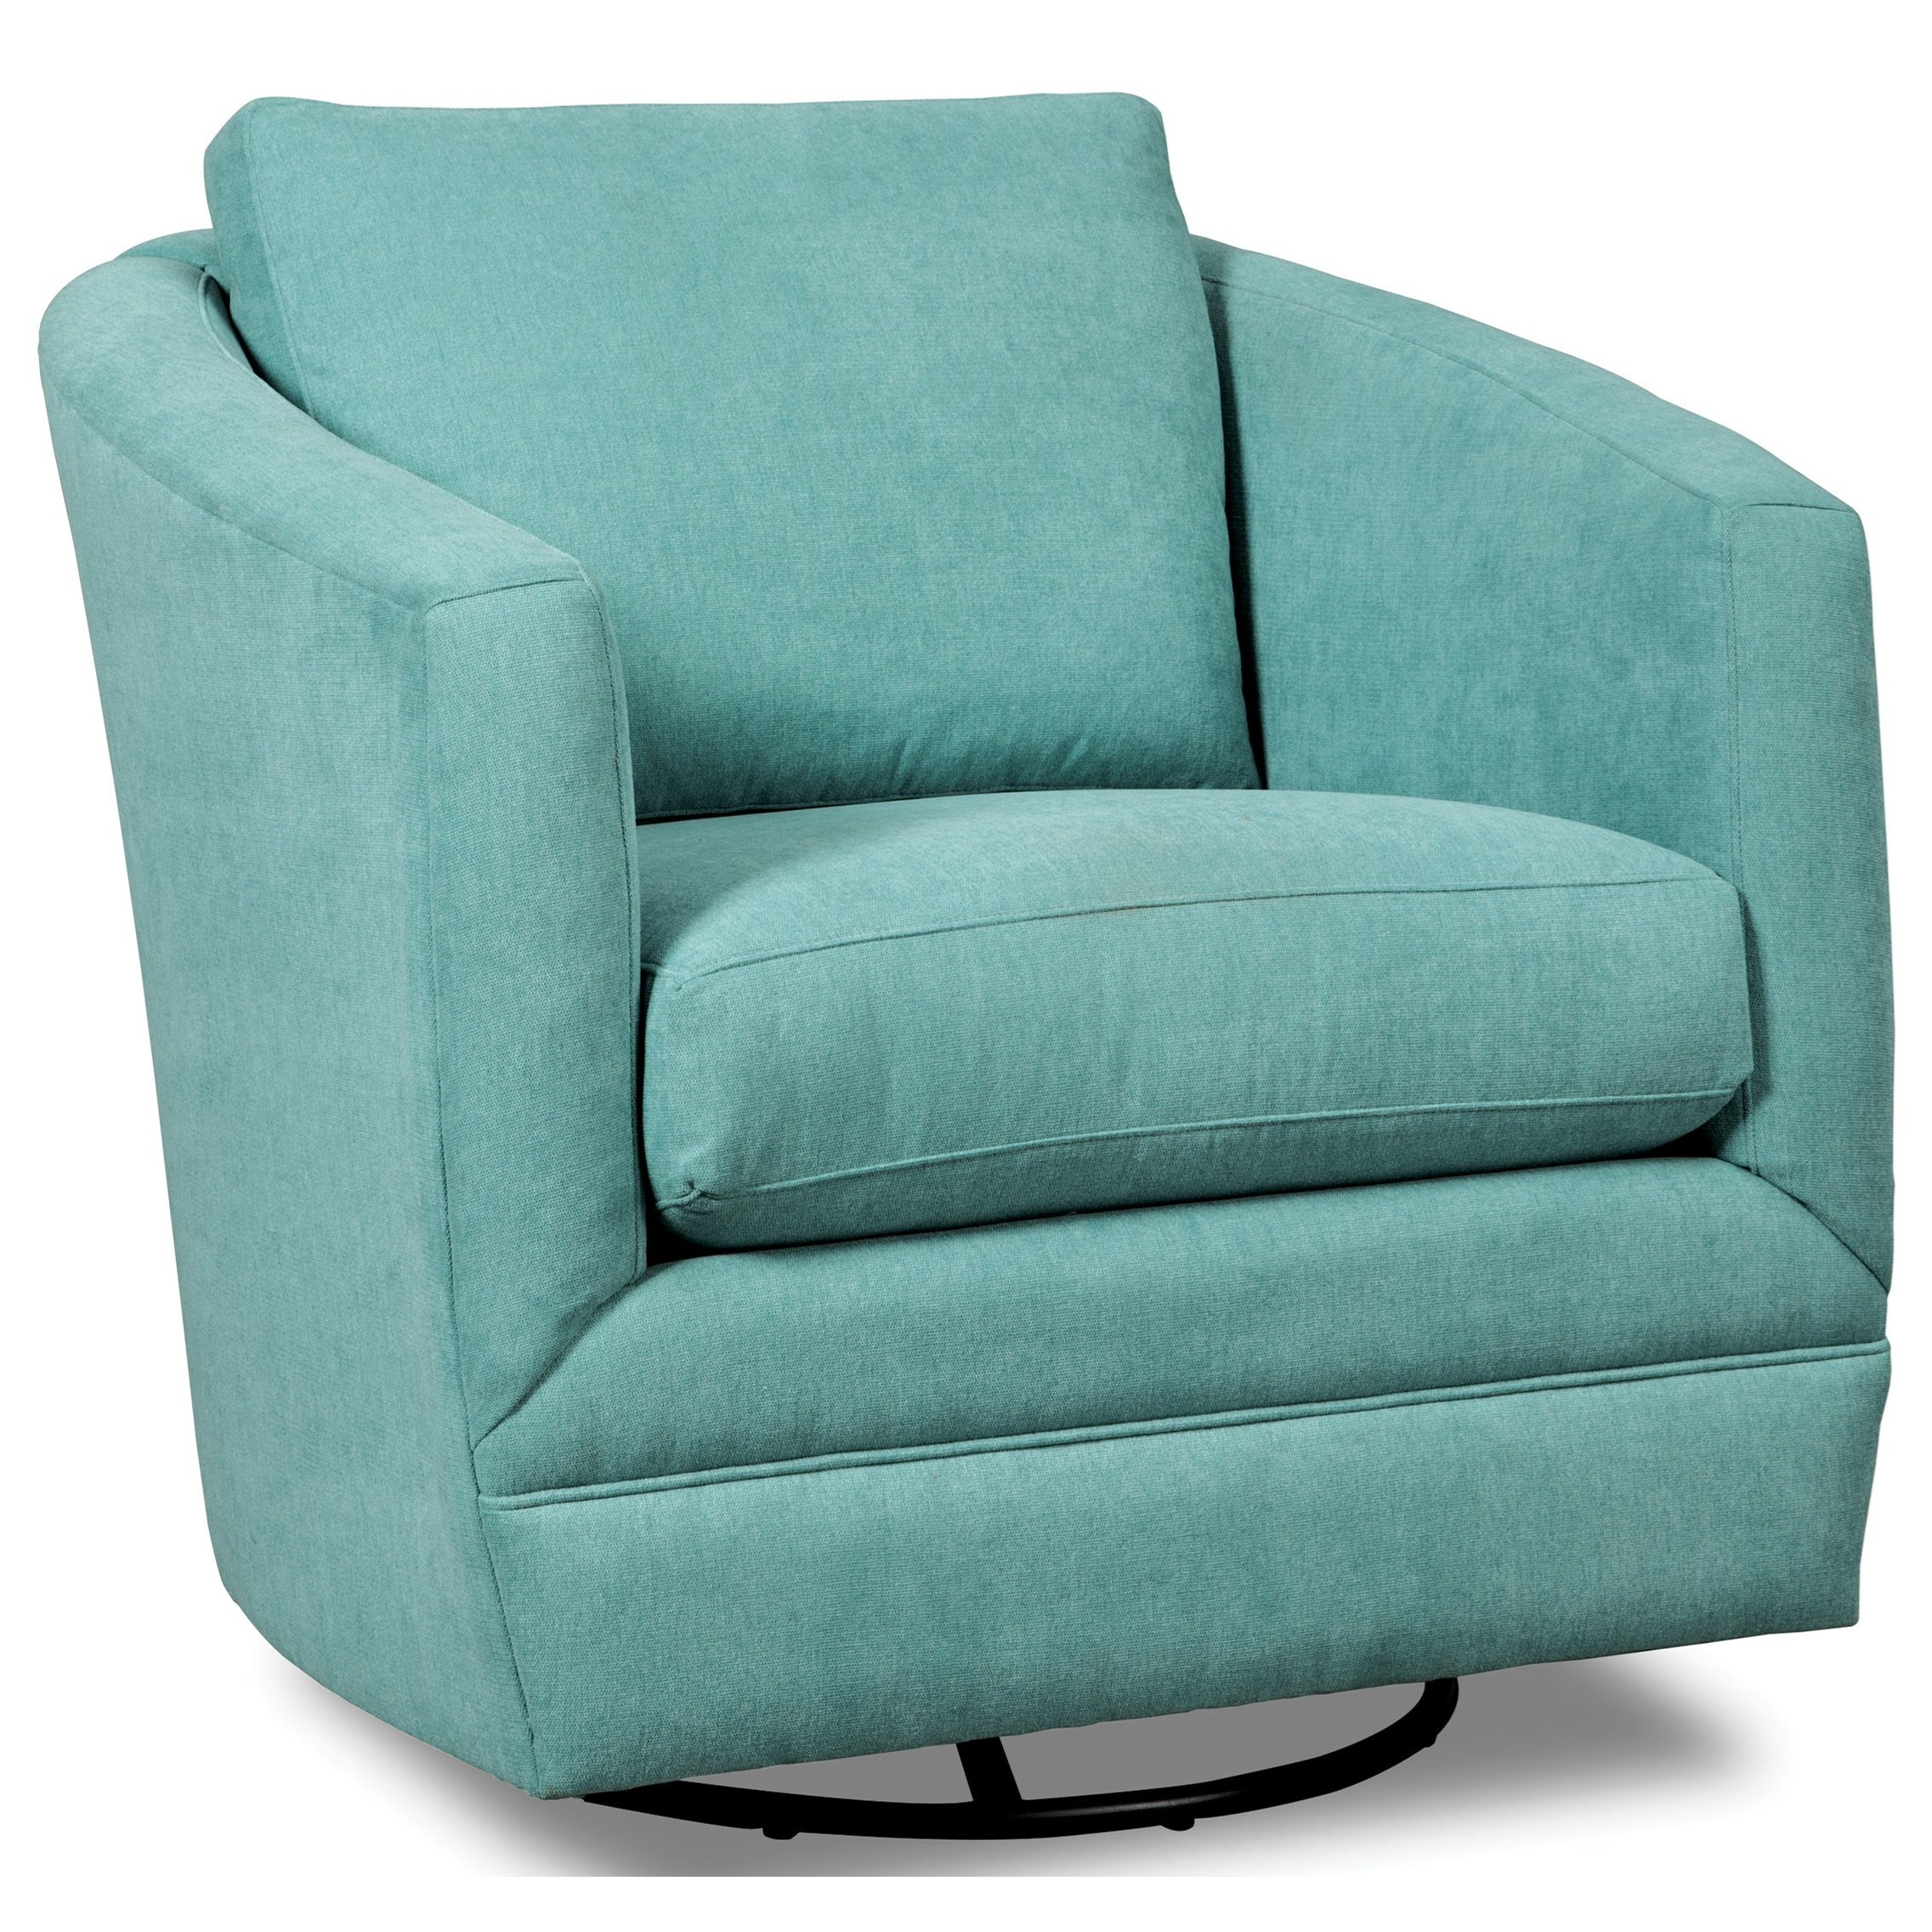 Accent Chairs Swivel Barrel Chair | Stoney Creek Furniture For Umber Grey Swivel Accent Chairs (View 24 of 25)